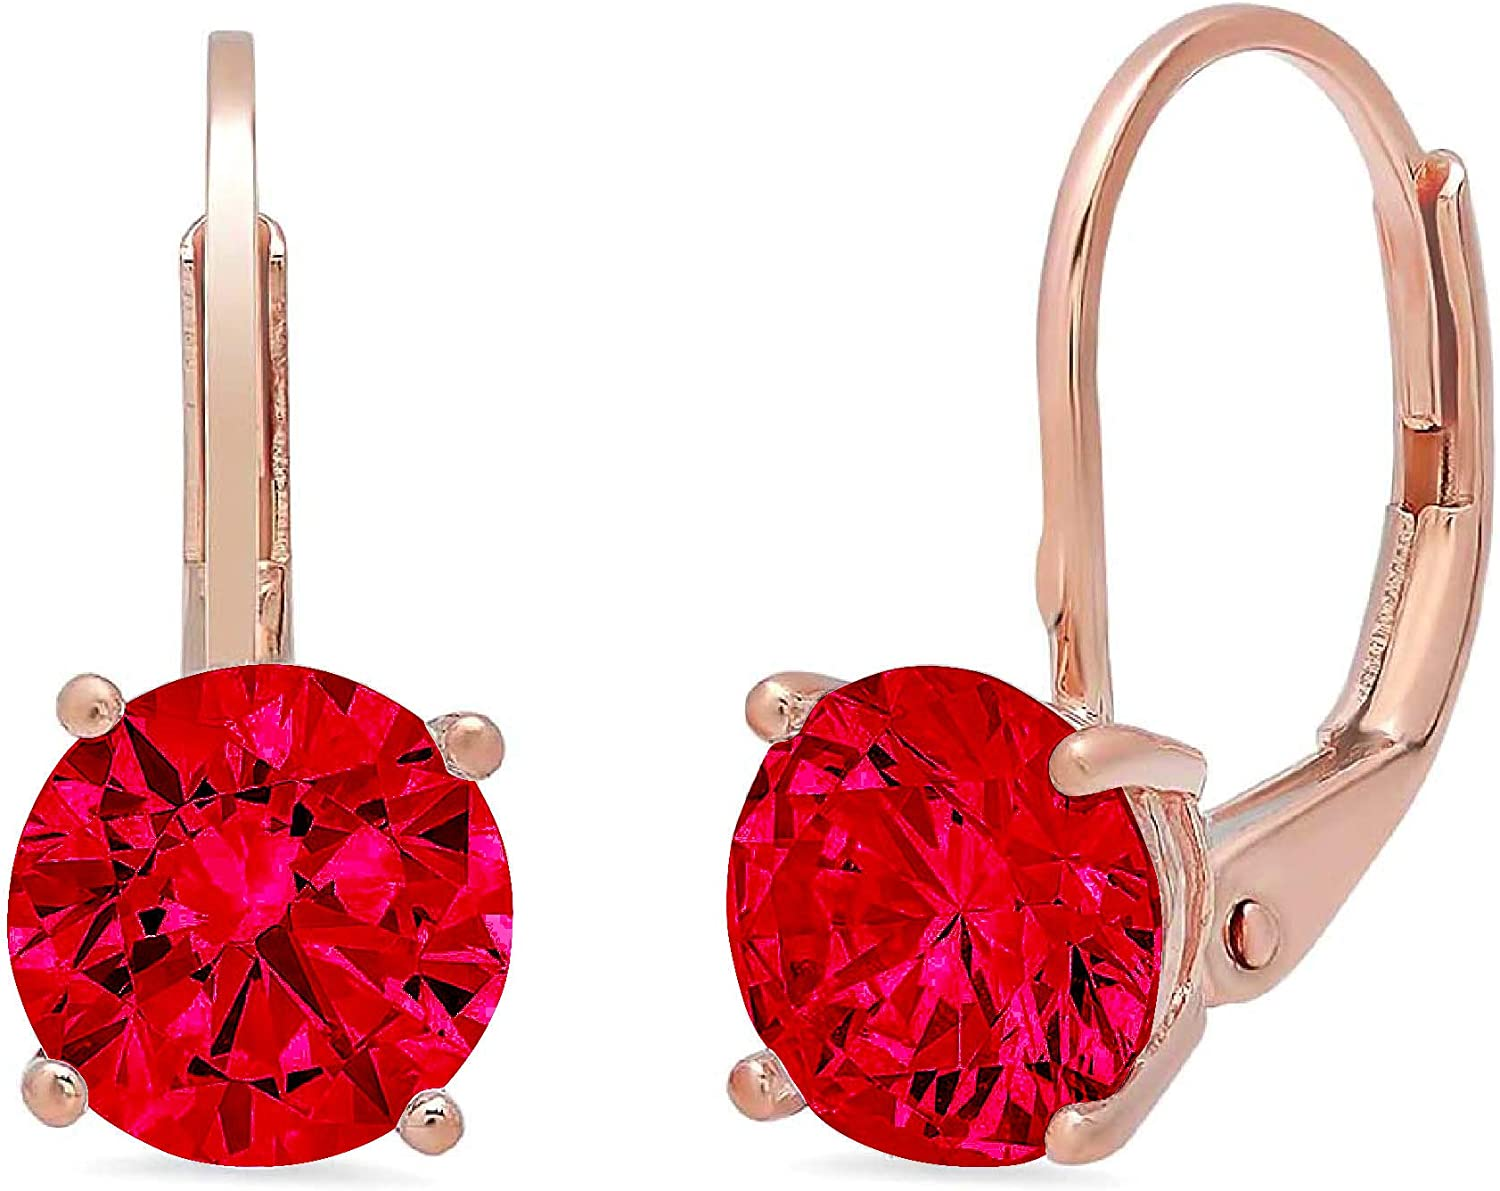 1.0 ct Brilliant Round Cut Solitaire Flawless Genuine Pink Tourmaline Gemstone VVS1 Ideal Pair of Leverback Drop Dangle Designer Earrings Solid 14k Rose Pink Gold